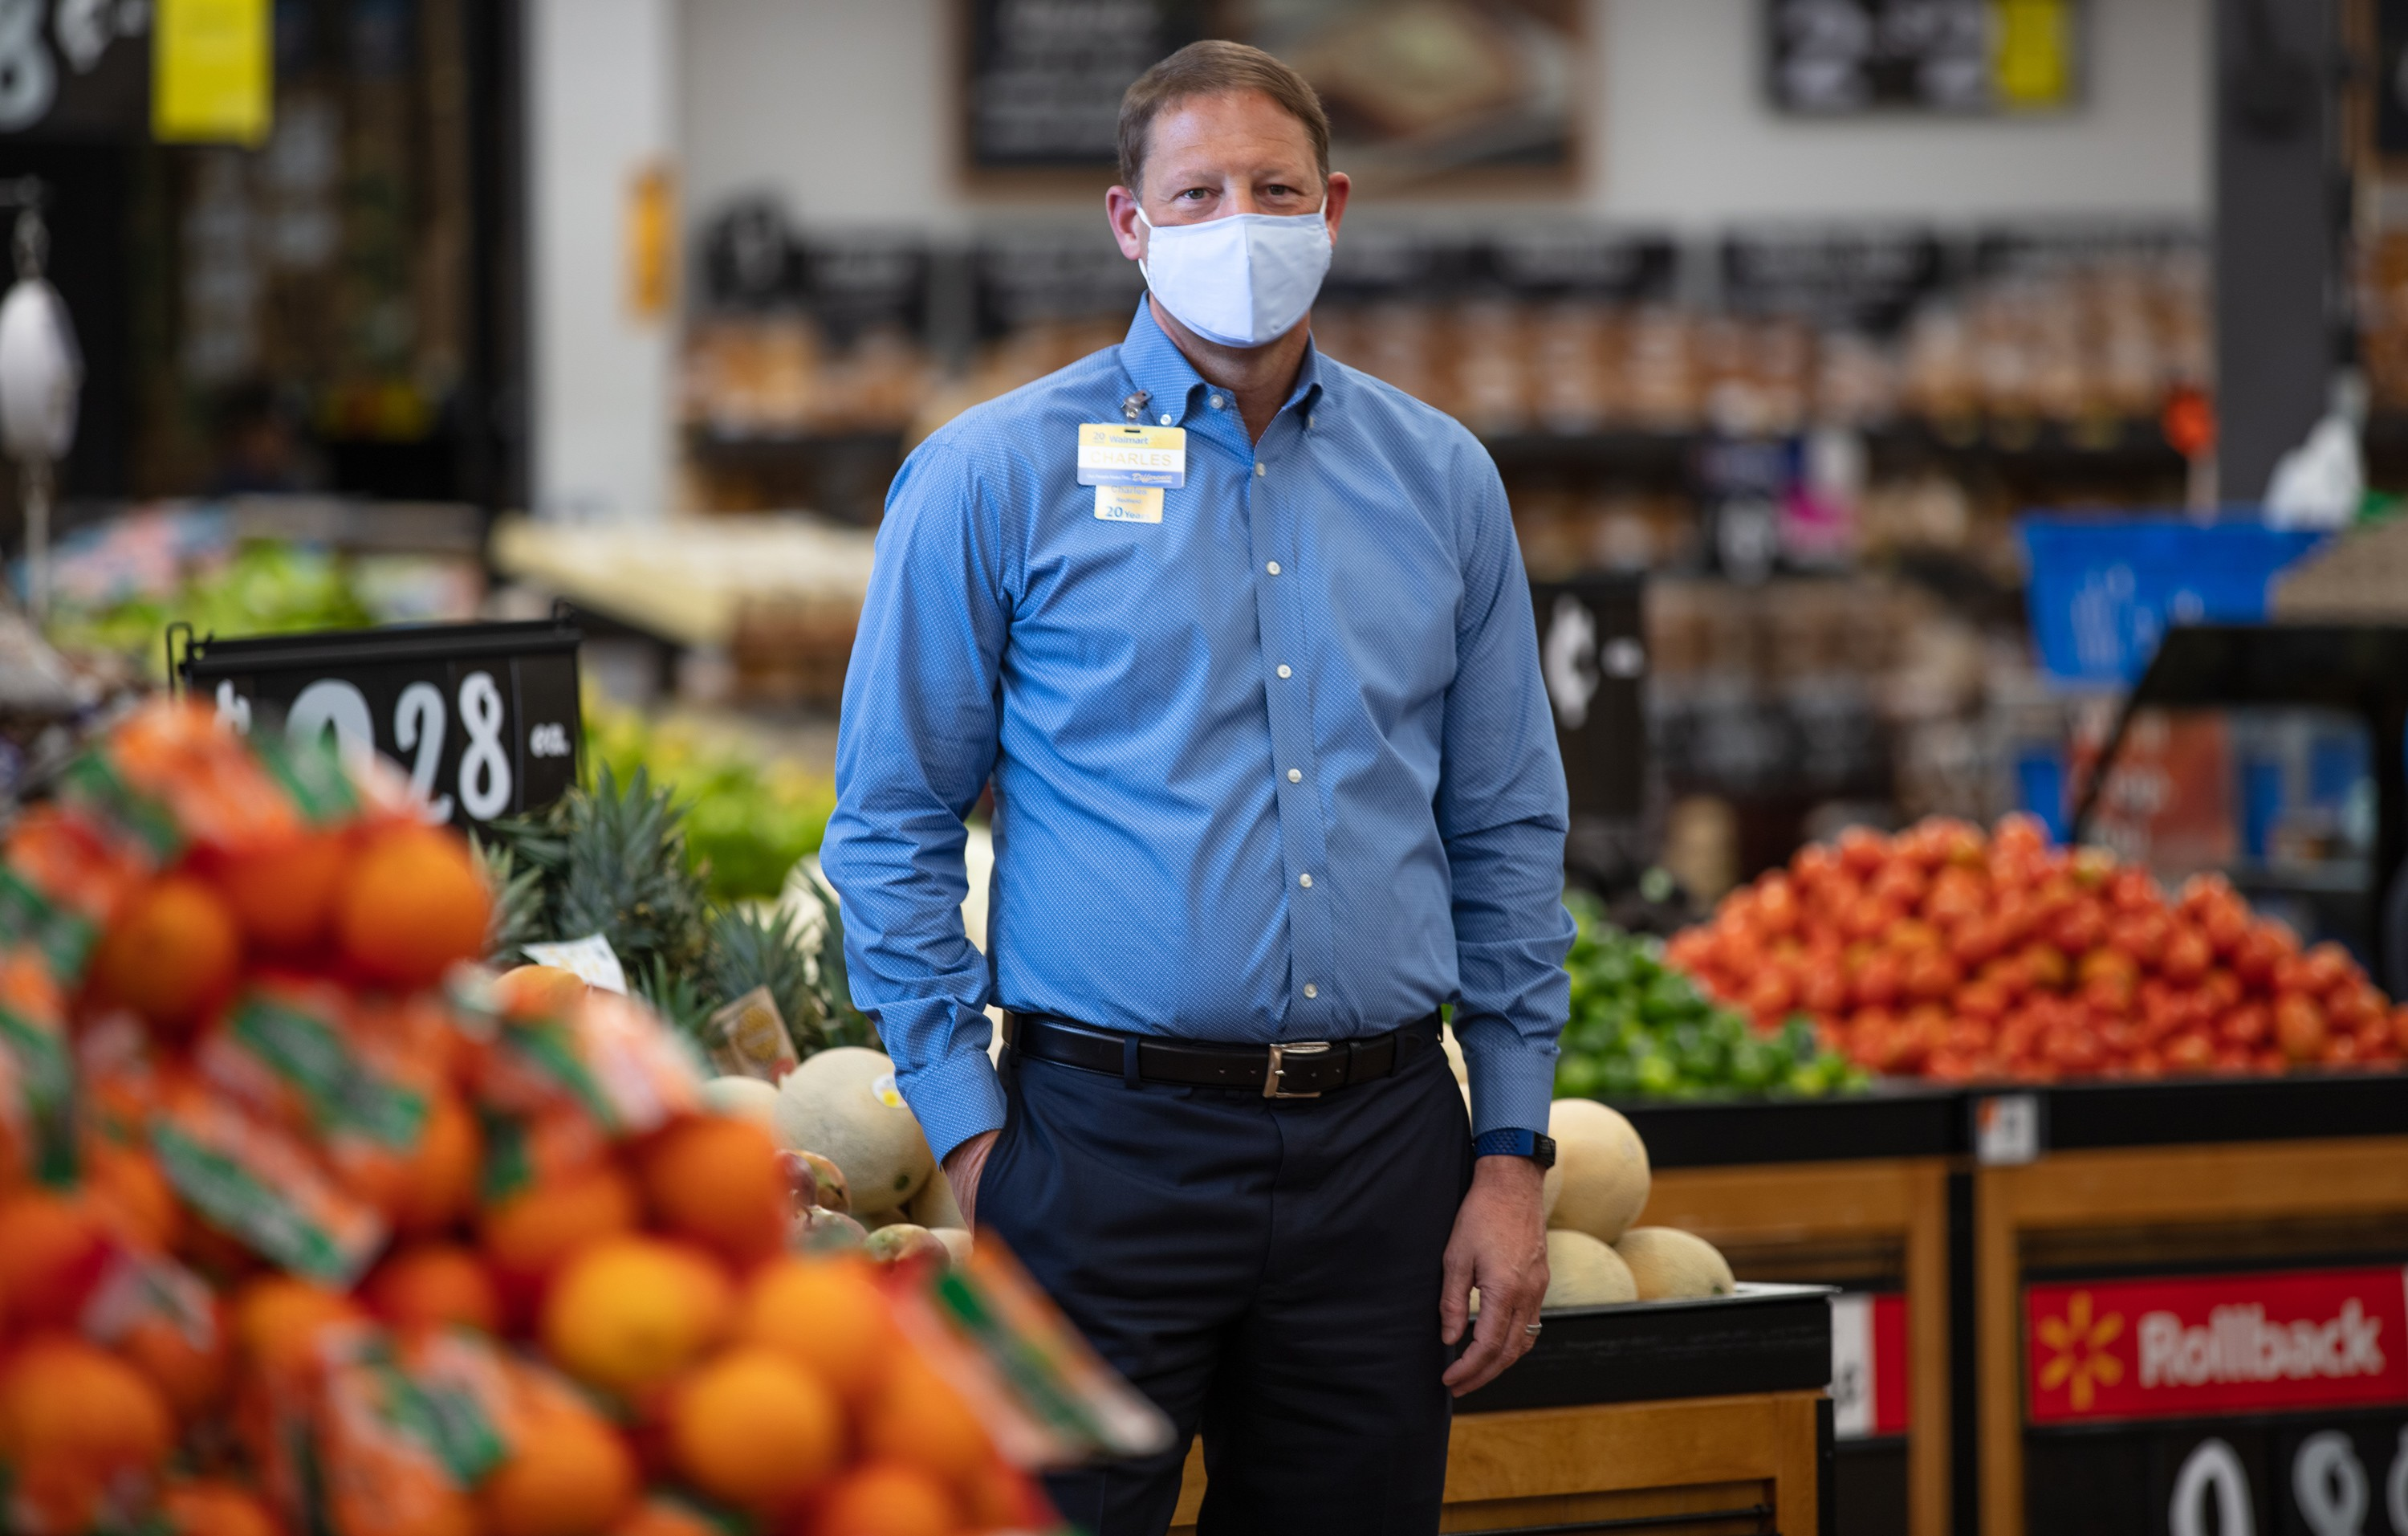 Charles Redfield, executive vice president of food for Walmart U.S., wears a mask in the fresh department